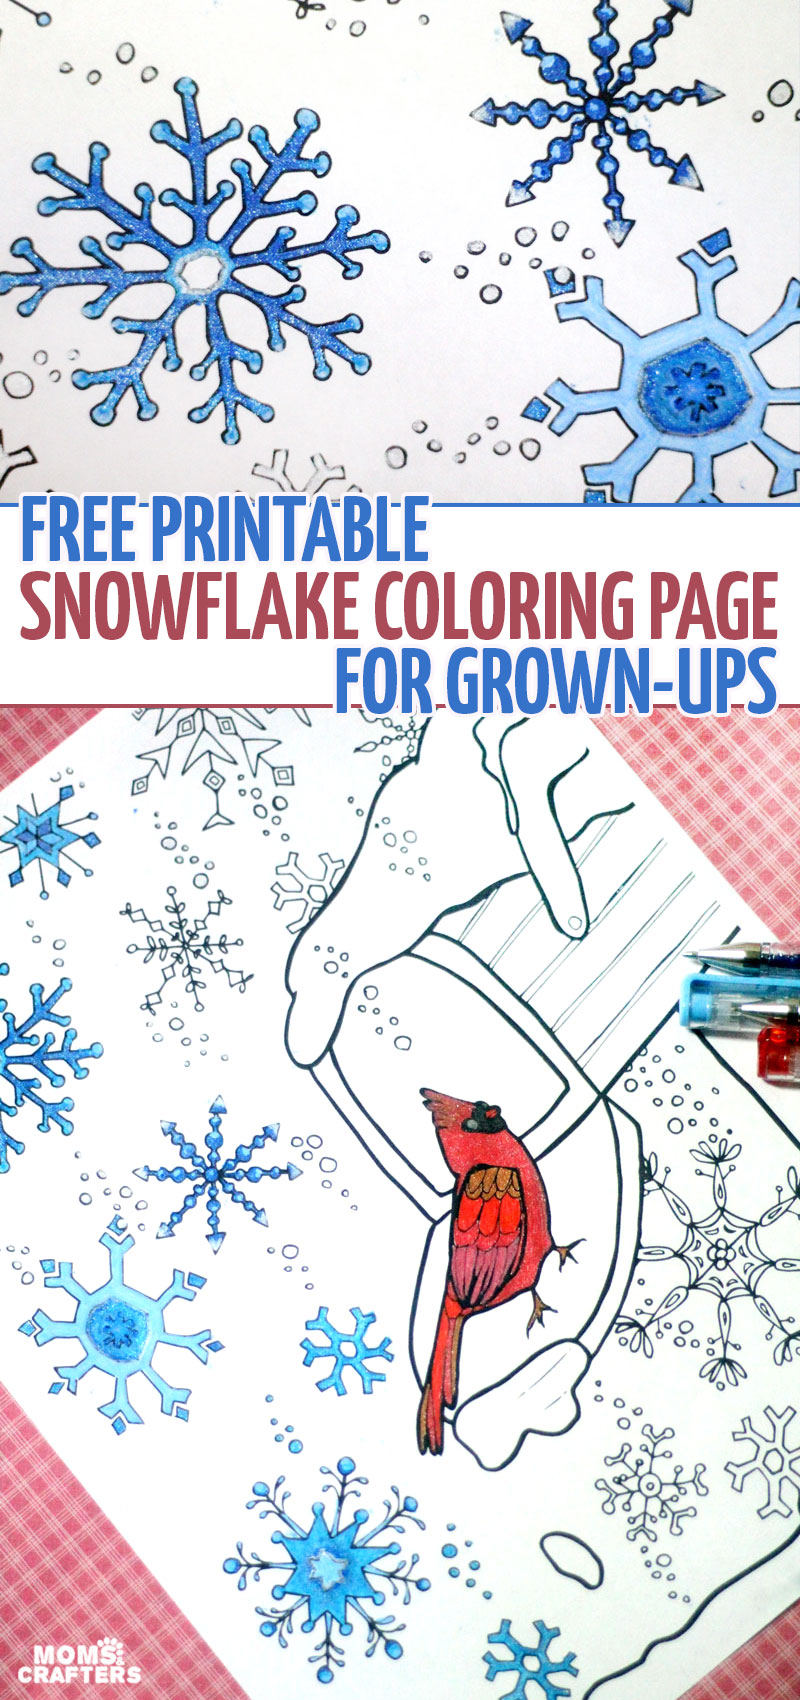 get these 11 free printable winter coloring pages for adults not just for christmas - Winter Coloring Pages For Adults